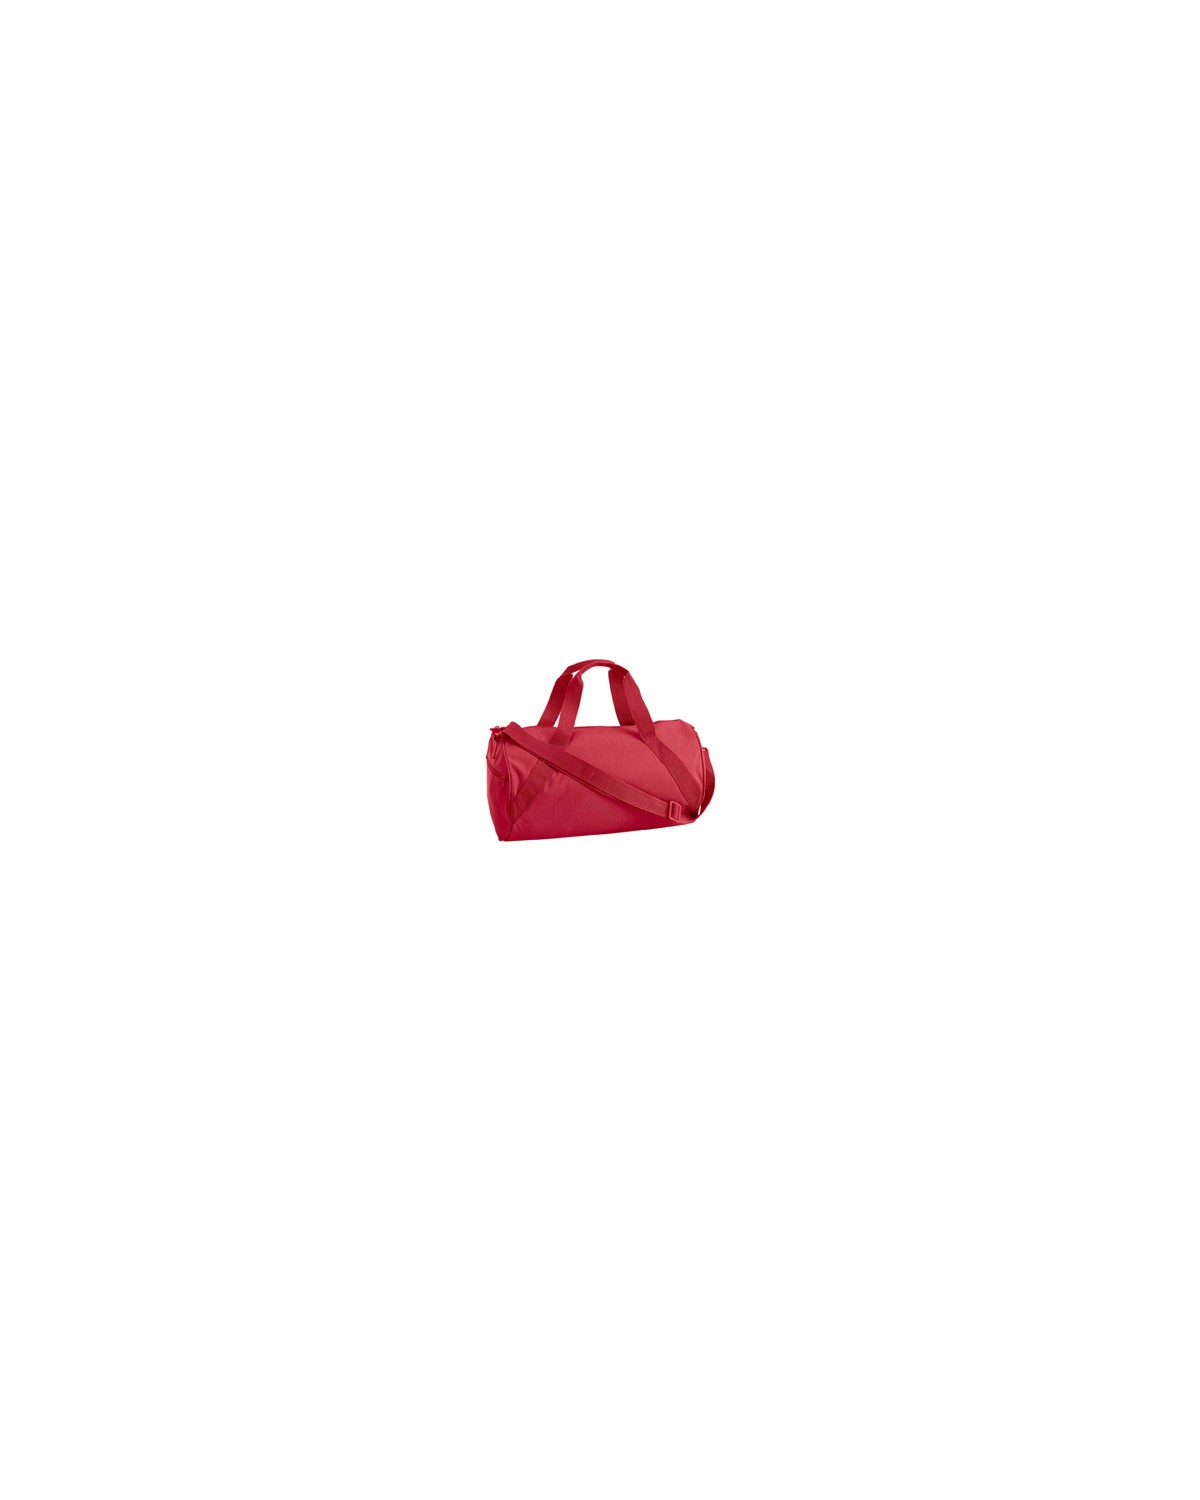 8805 Liberty Bags RED